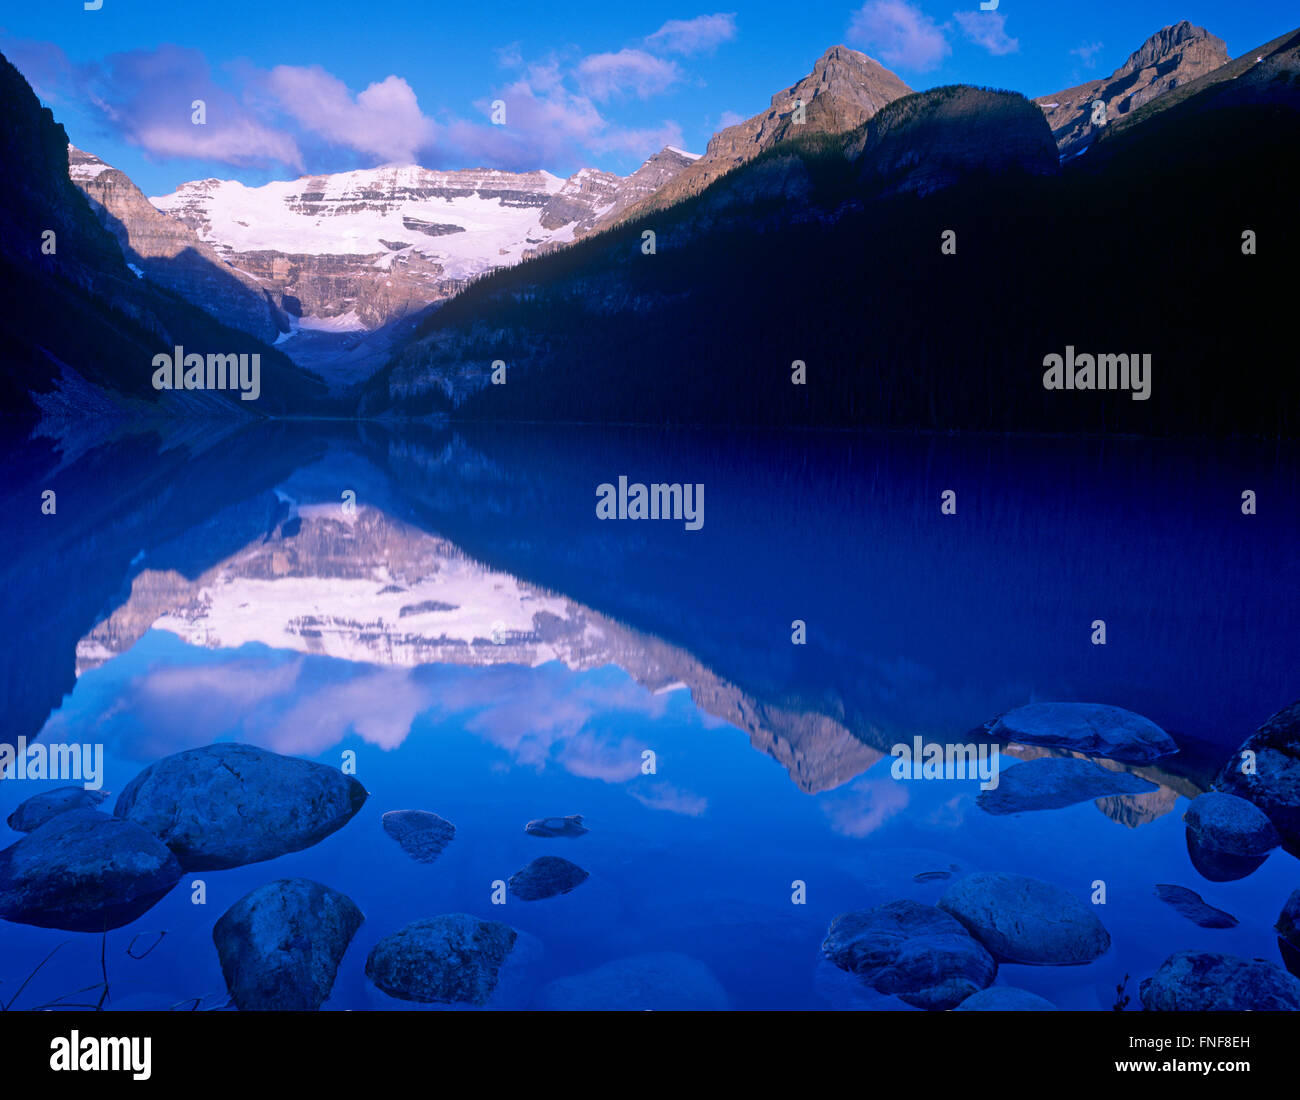 Lake Louise, Banff National Park, Alberta, Canada Photo Stock